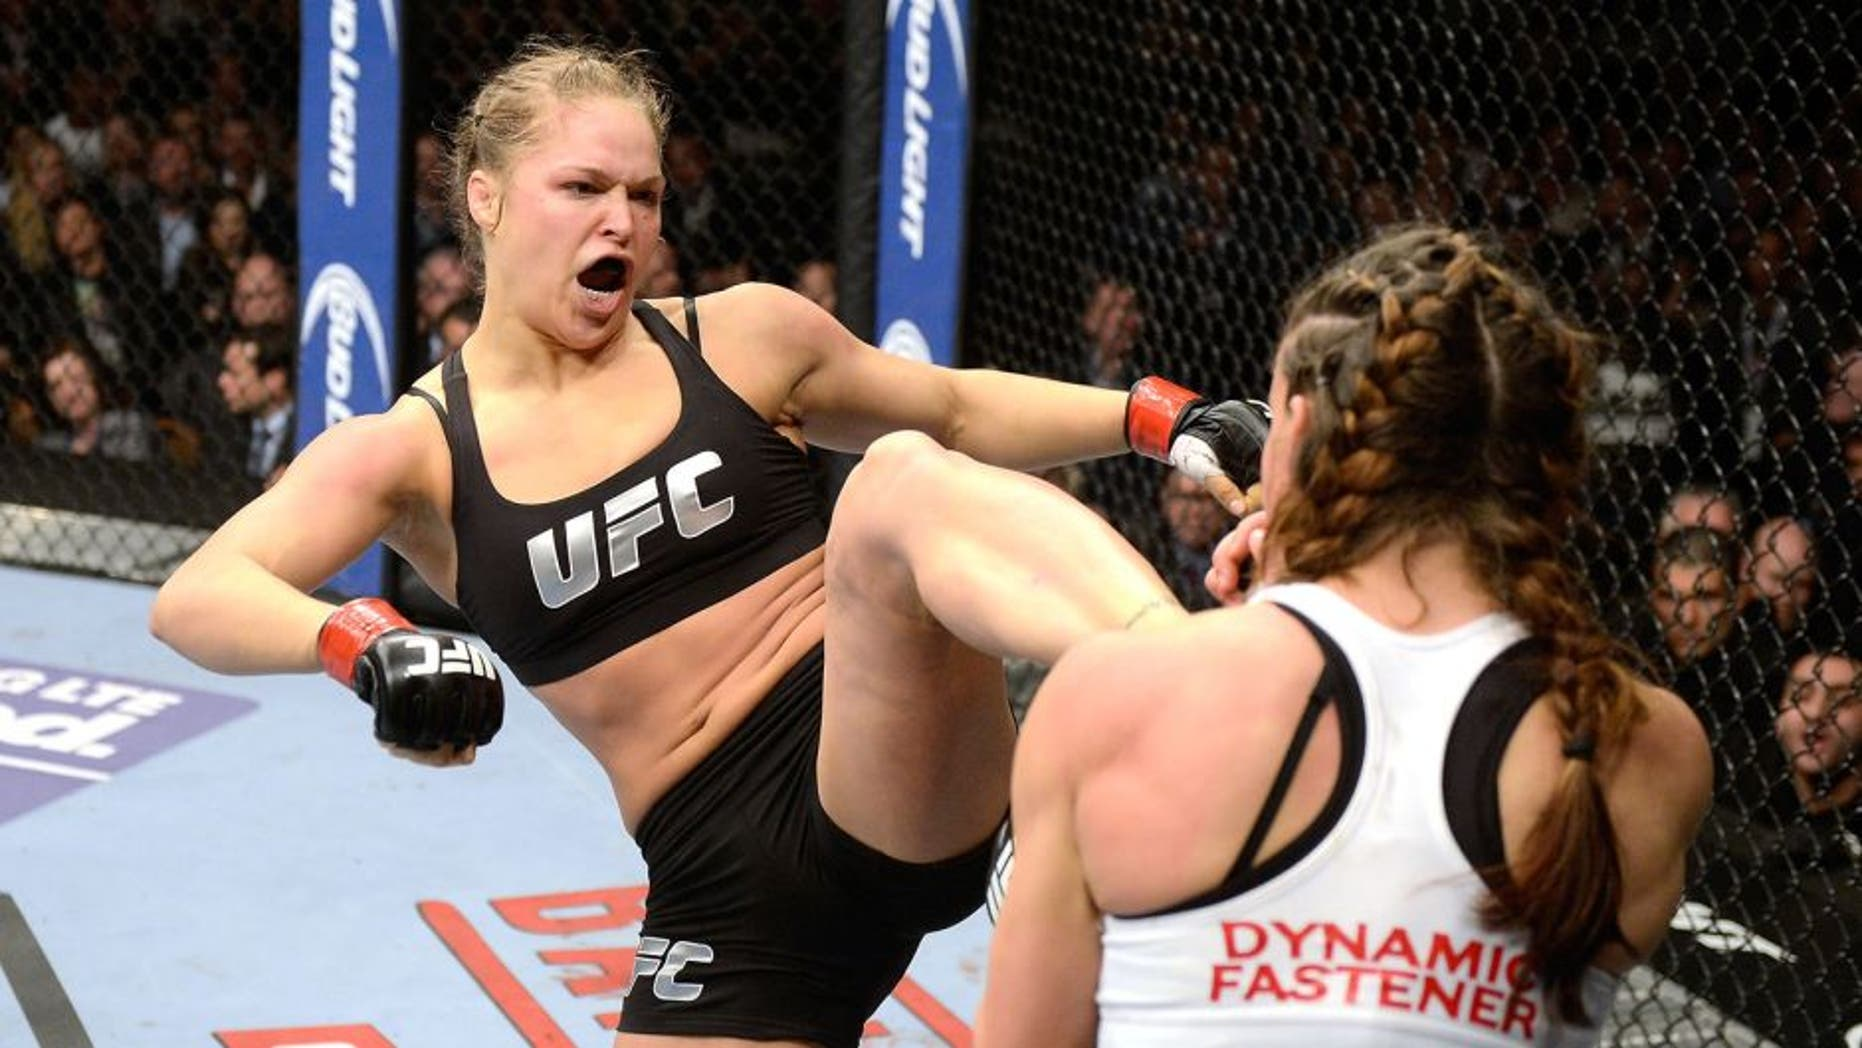 LAS VEGAS, NV - DECEMBER 28: (L-R) Ronda Rousey kicks Miesha Tate in their UFC women's bantamweight championship bout during the UFC 168 event at the MGM Grand Garden Arena on December 28, 2013 in Las Vegas, Nevada. (Photo by Donald Miralle/Zuffa LLC/Zuffa LLC via Getty Images)